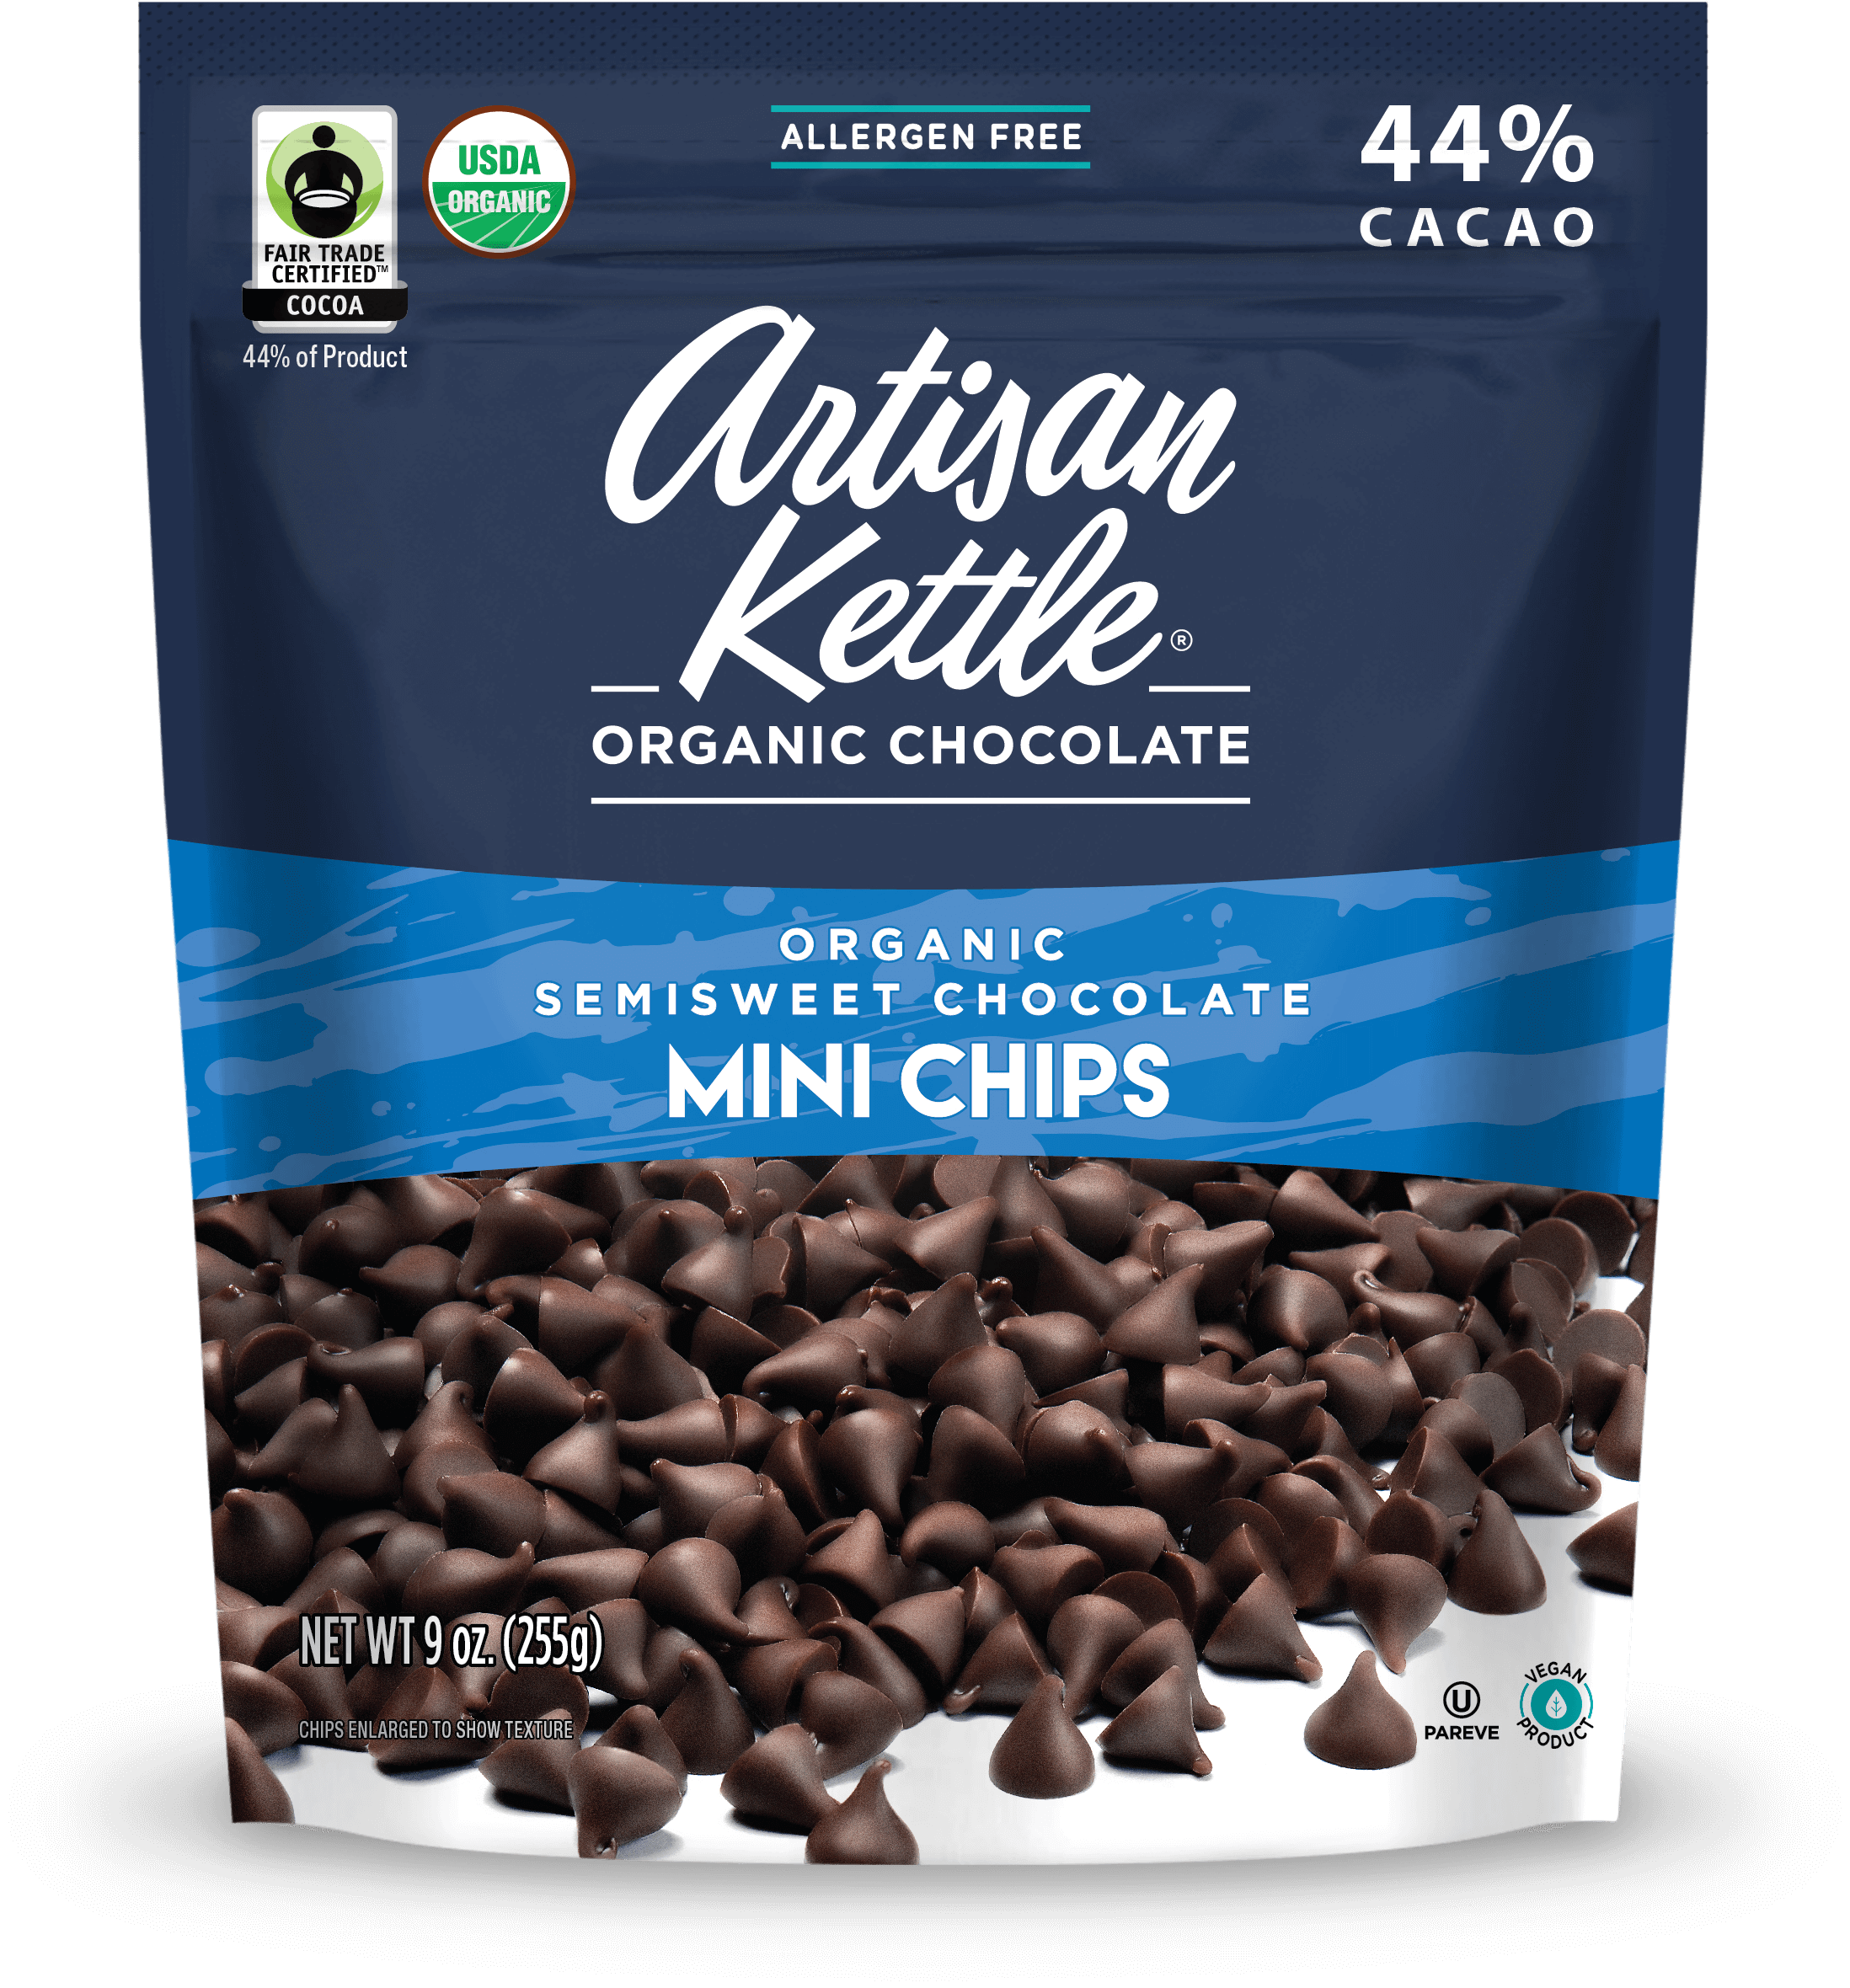 Organic Semisweet Chocolate Mini Chips